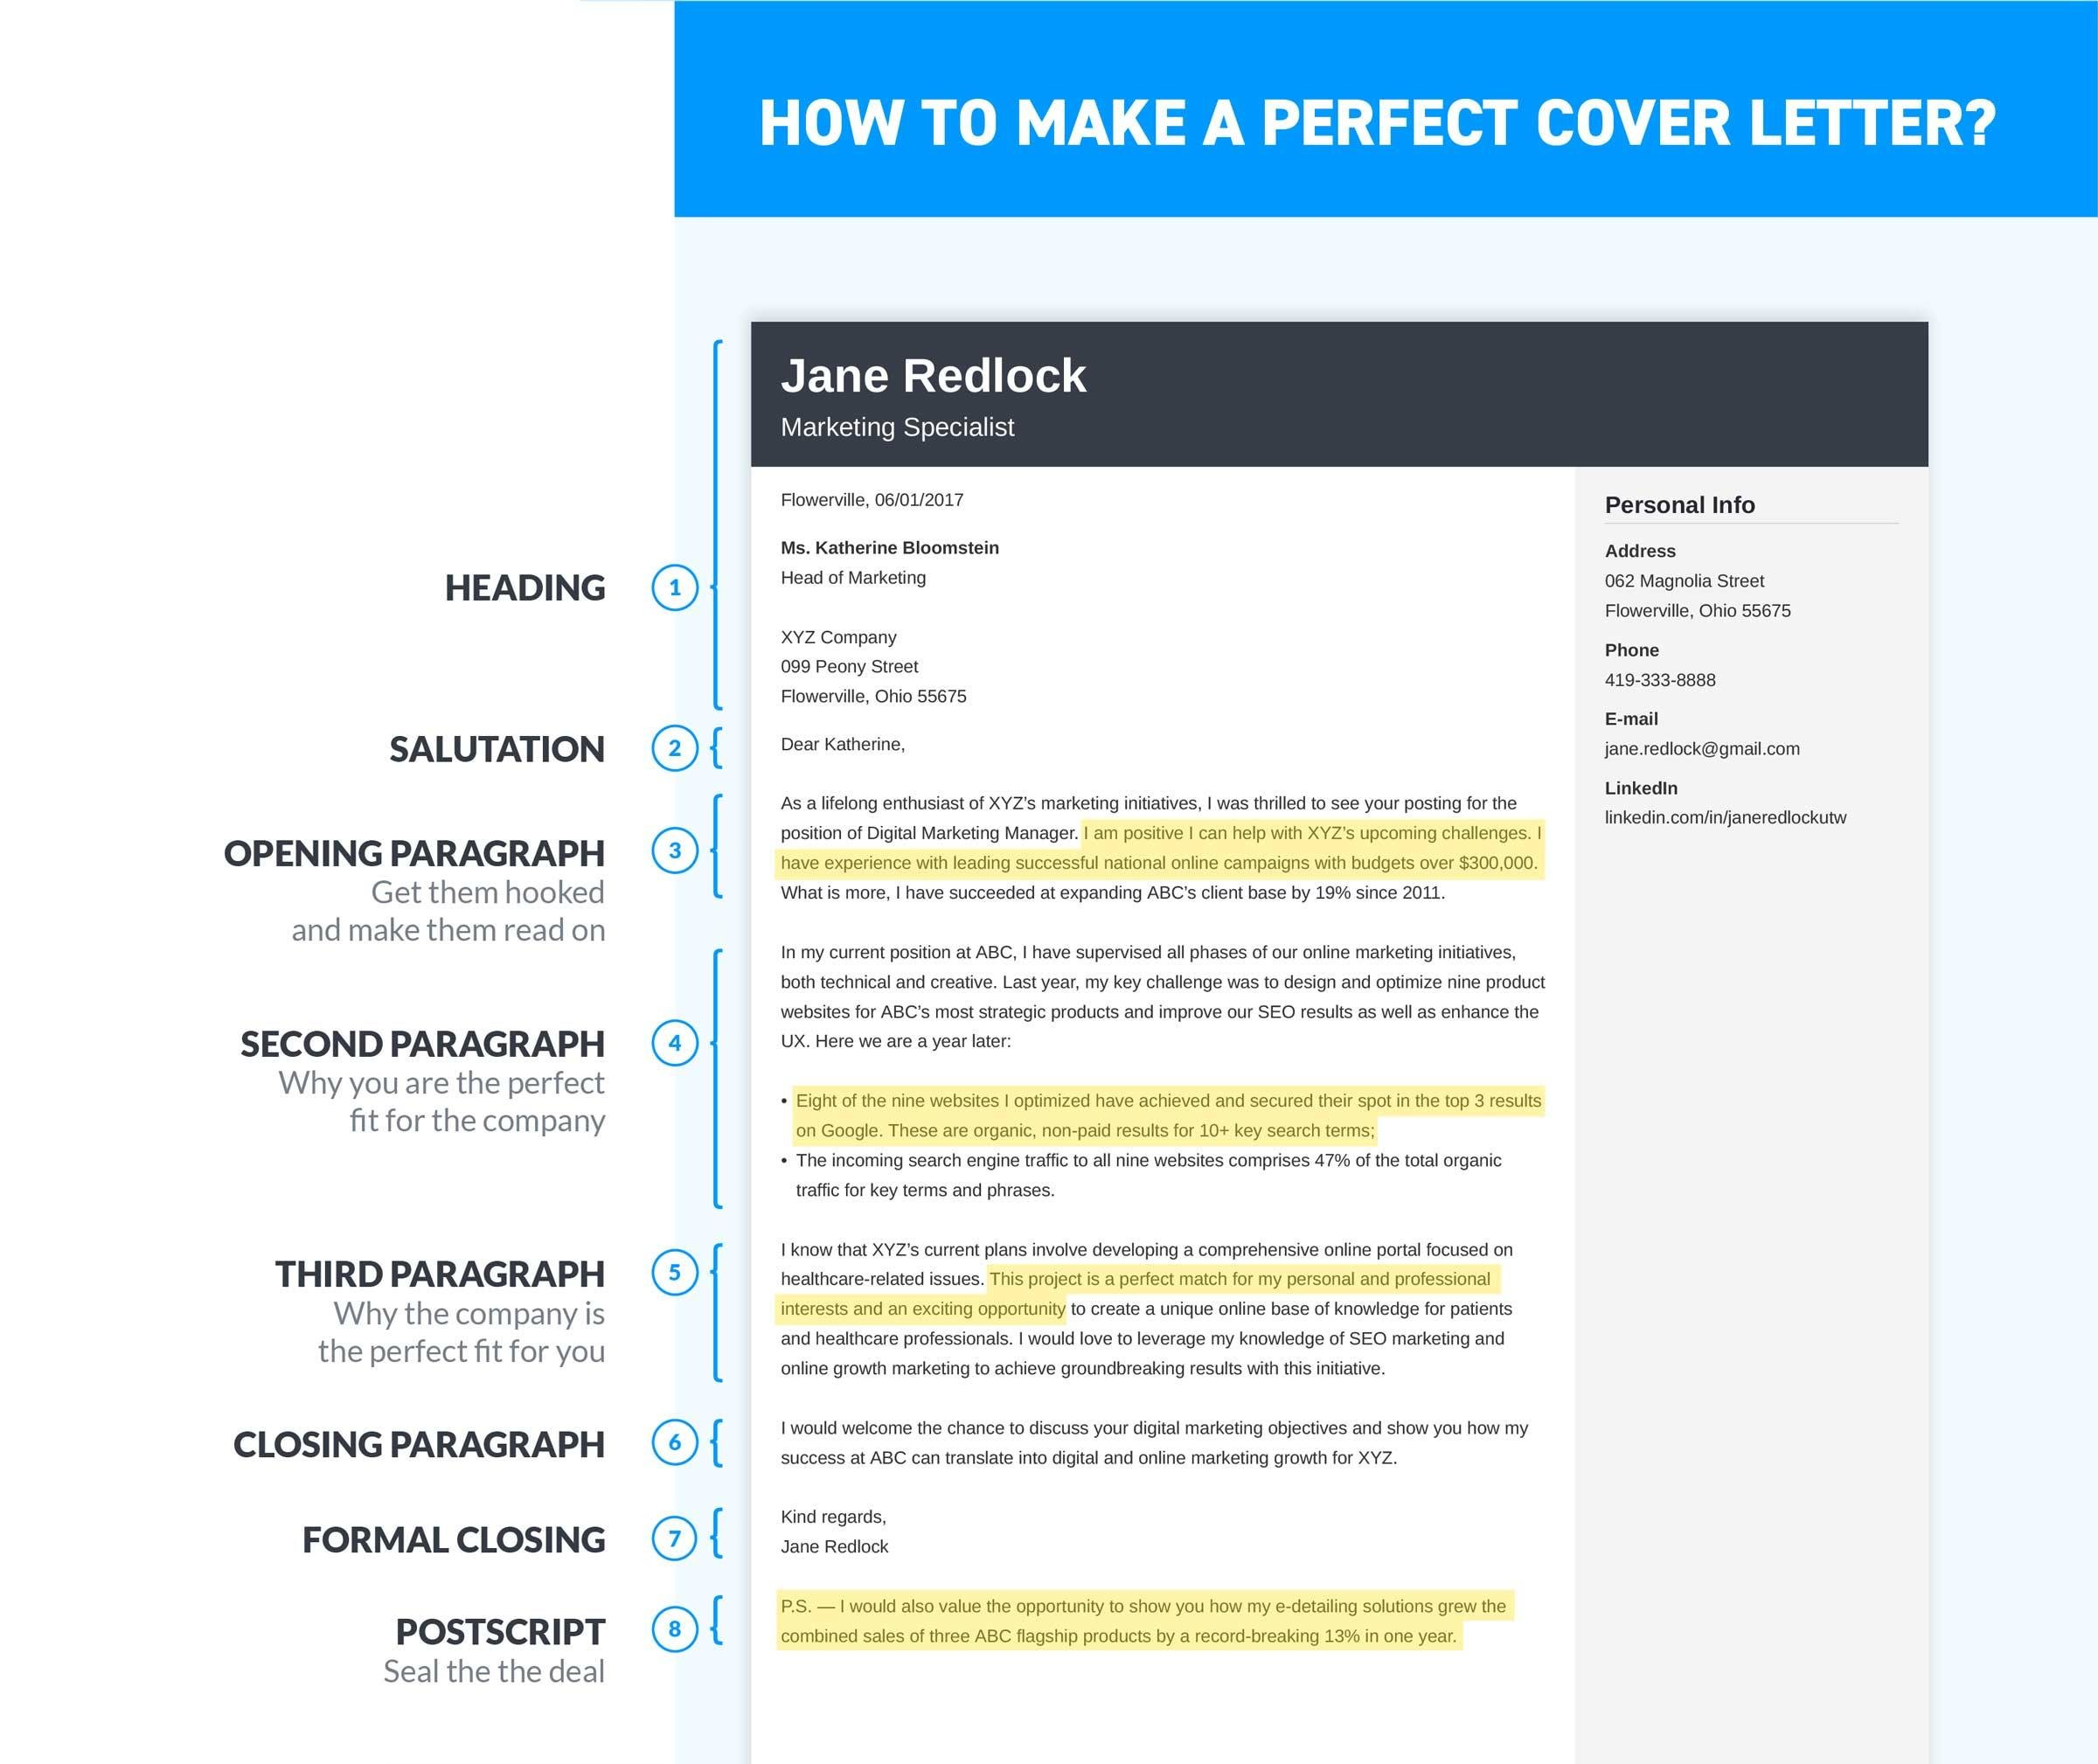 how to write a cover letter  10  examples  tips  u0026 templates to use